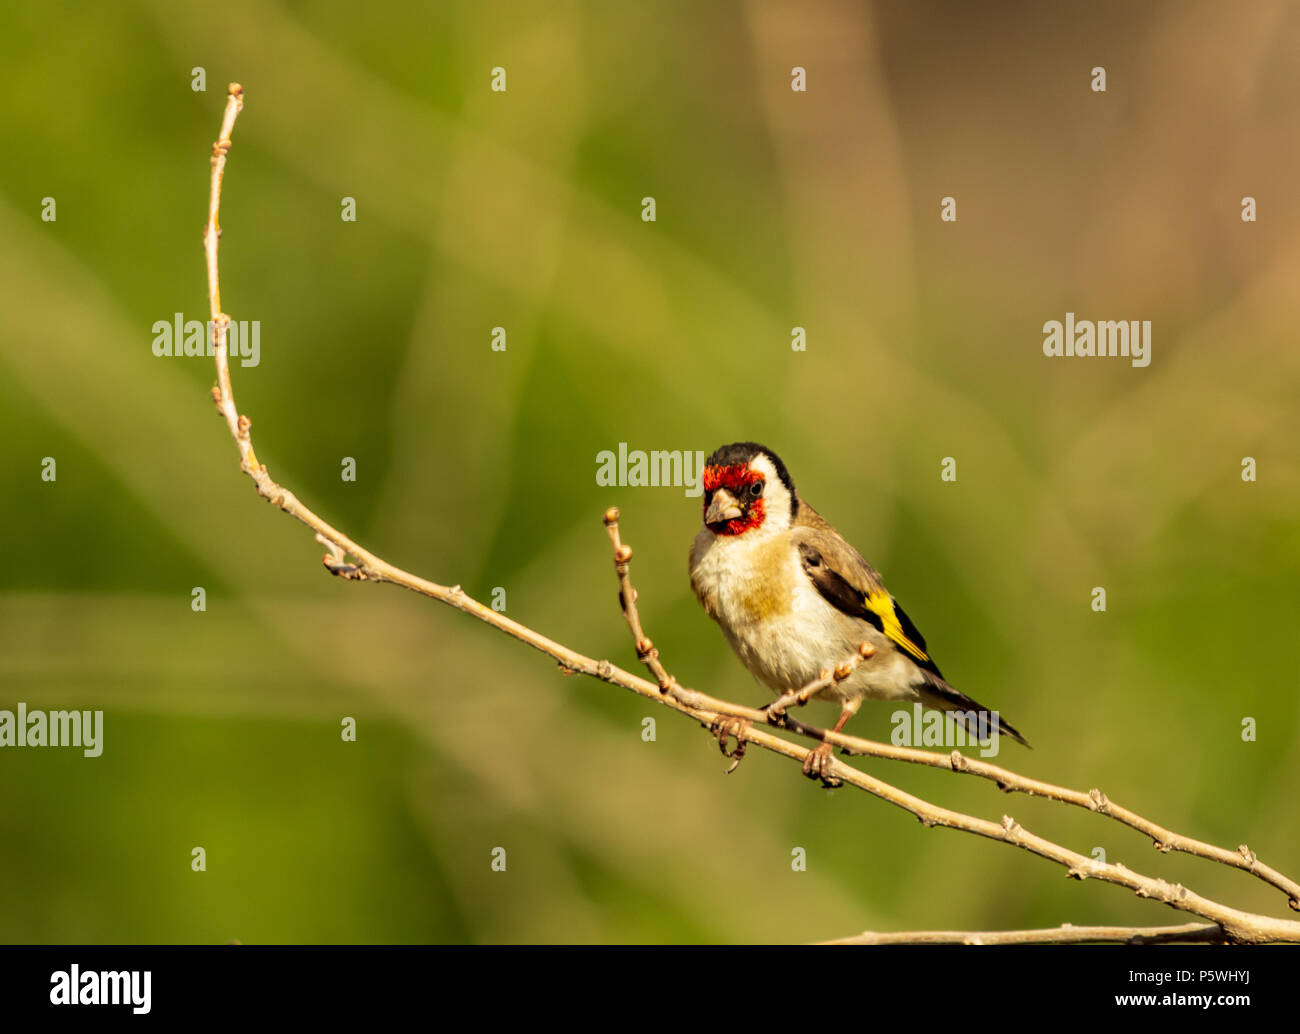 Carduelis carduelis, European Goldfinch, perching on a branch Stock Photo